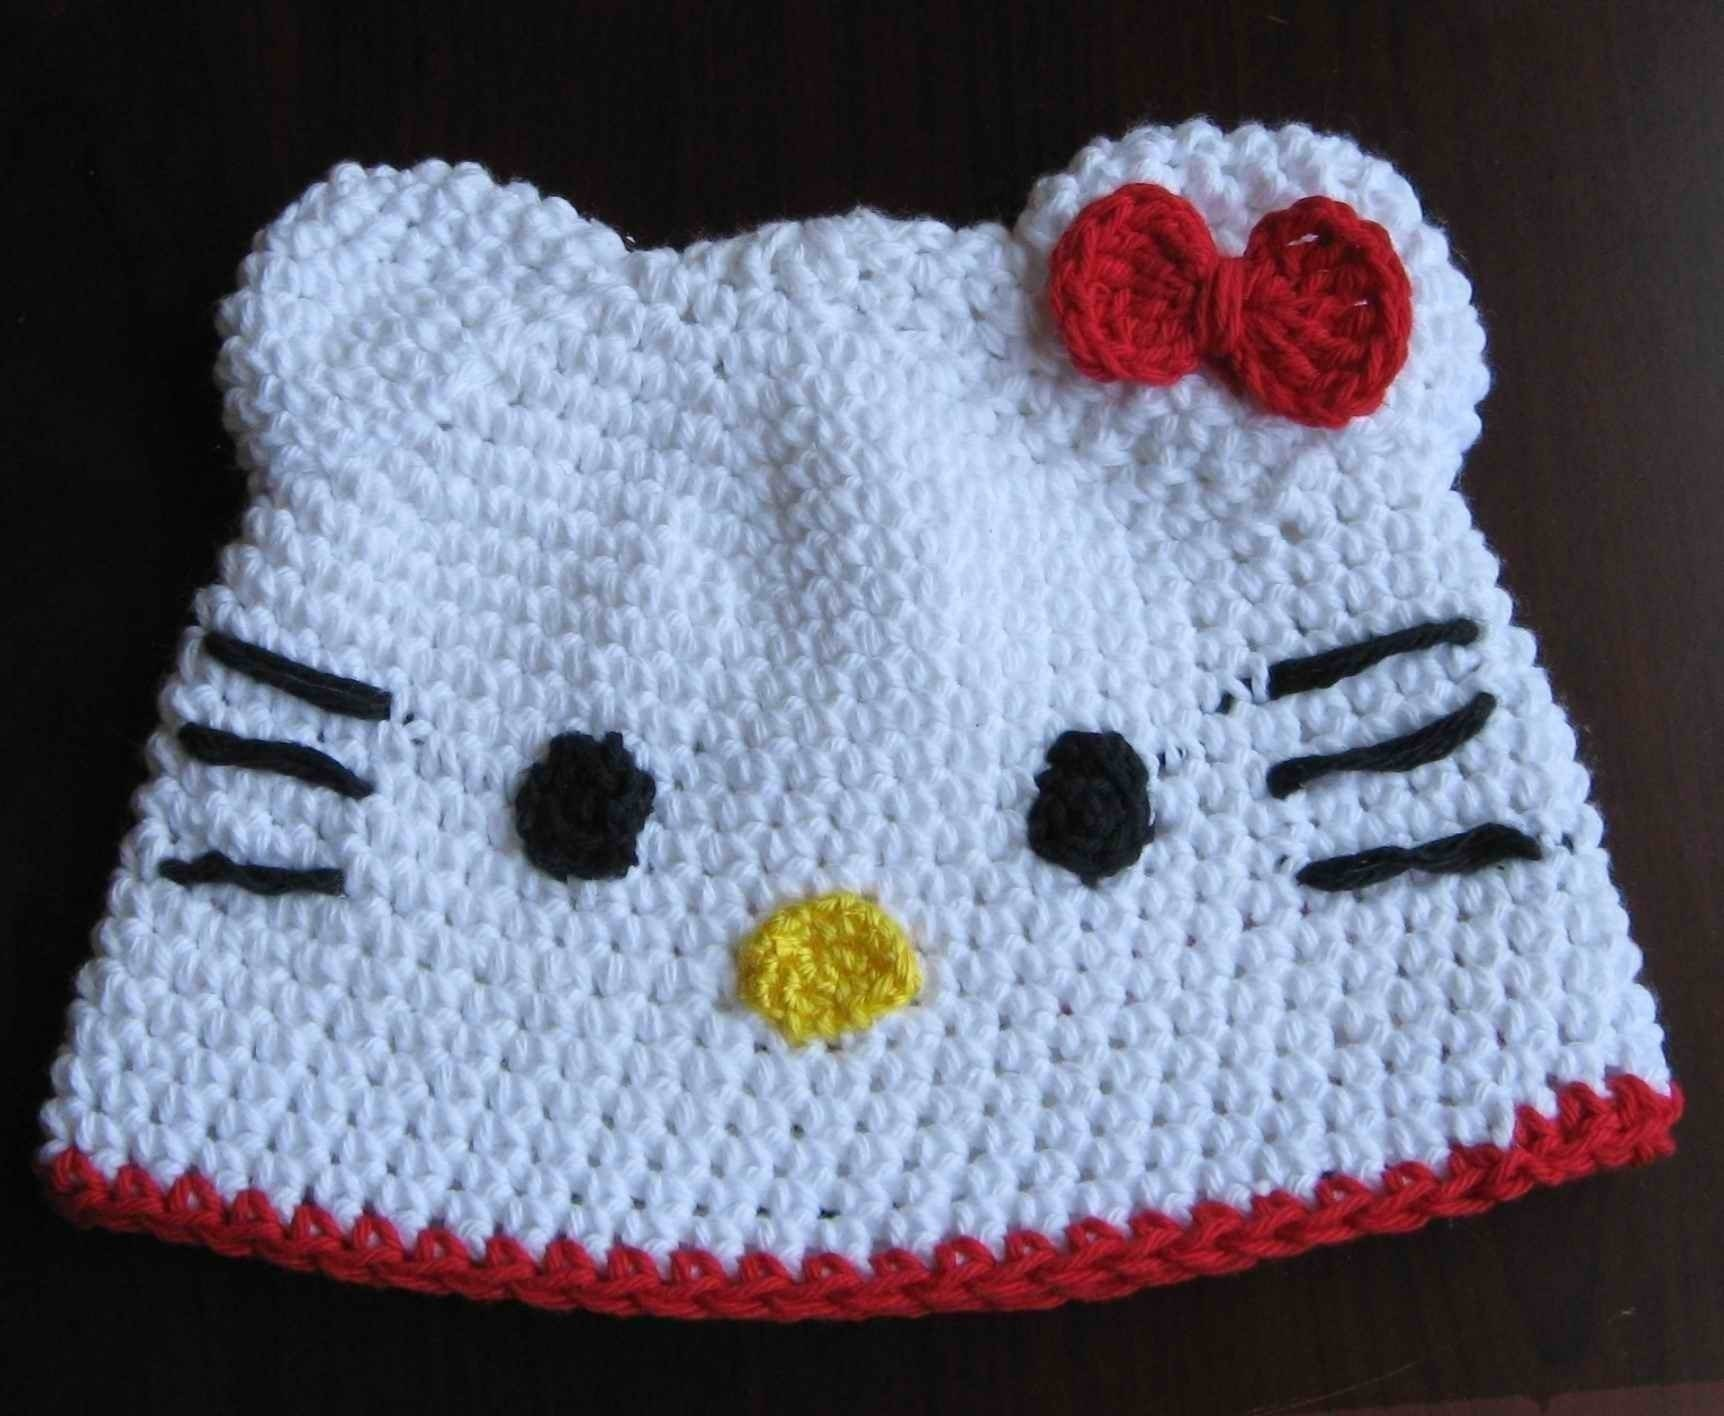 Free Crochet Pattern Hello Kitty Hat : PATTERN crocheted Hello Kitty beanie hat in size of 12 24